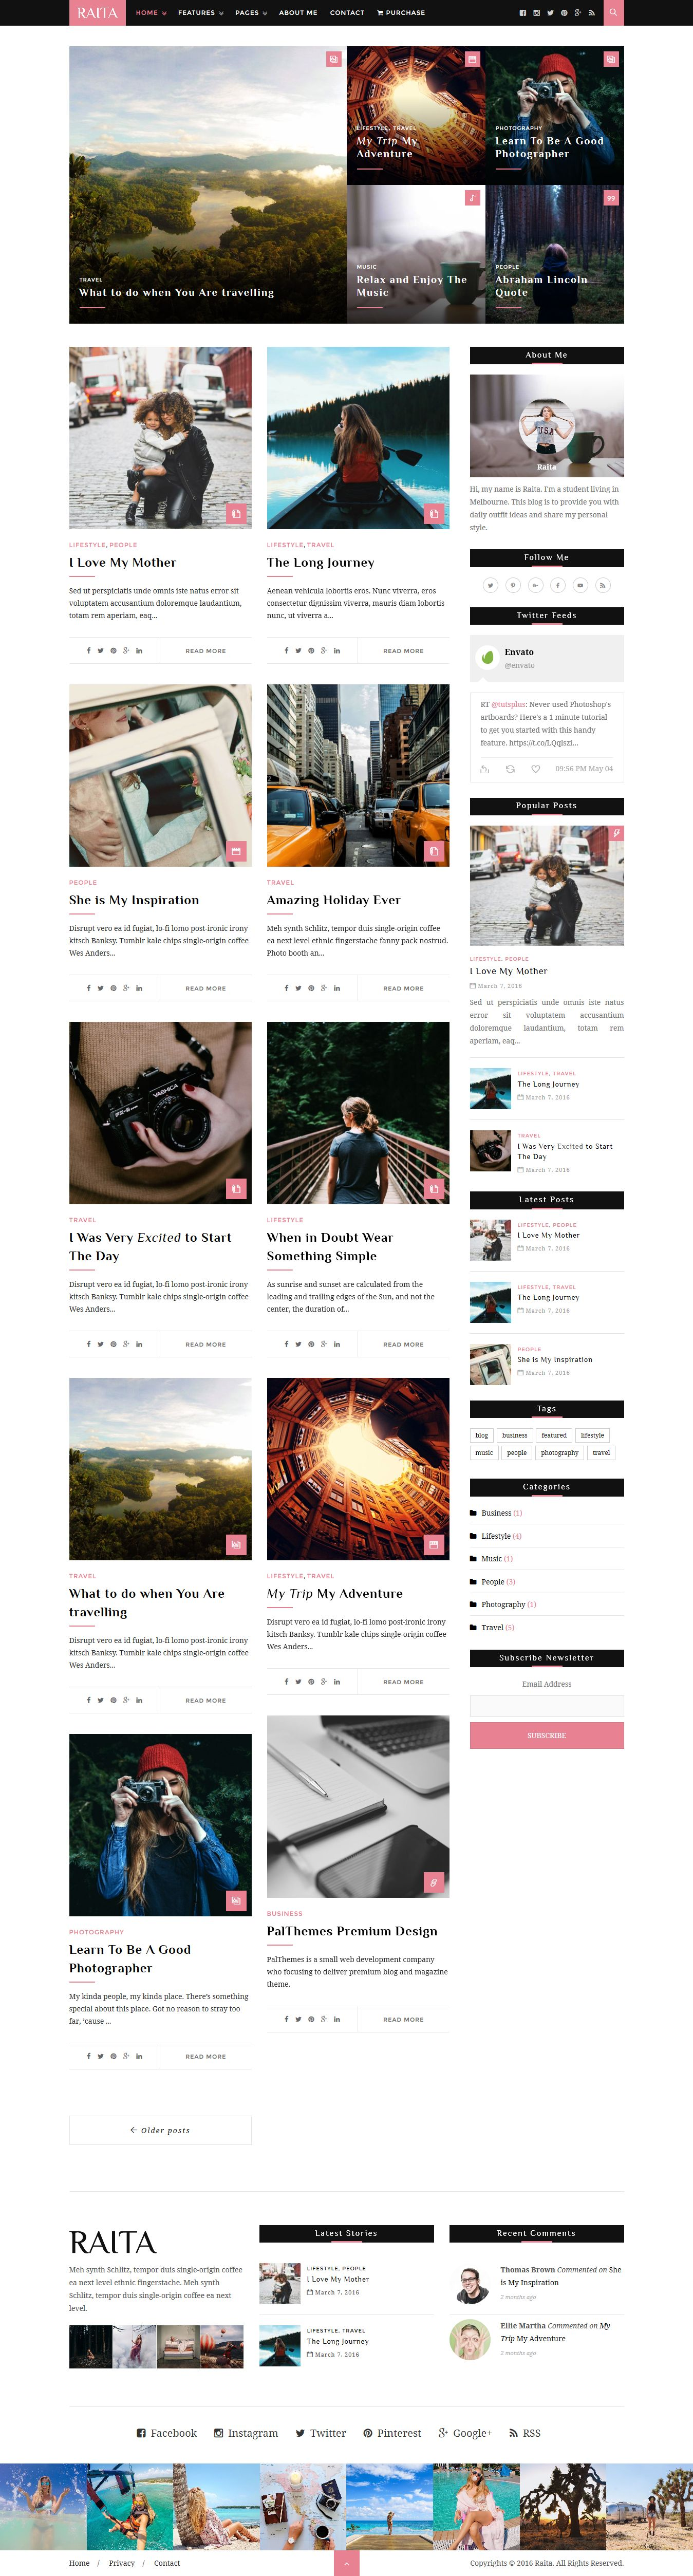 Raita - Minimal WordPress Theme For Writers Screenshot 3